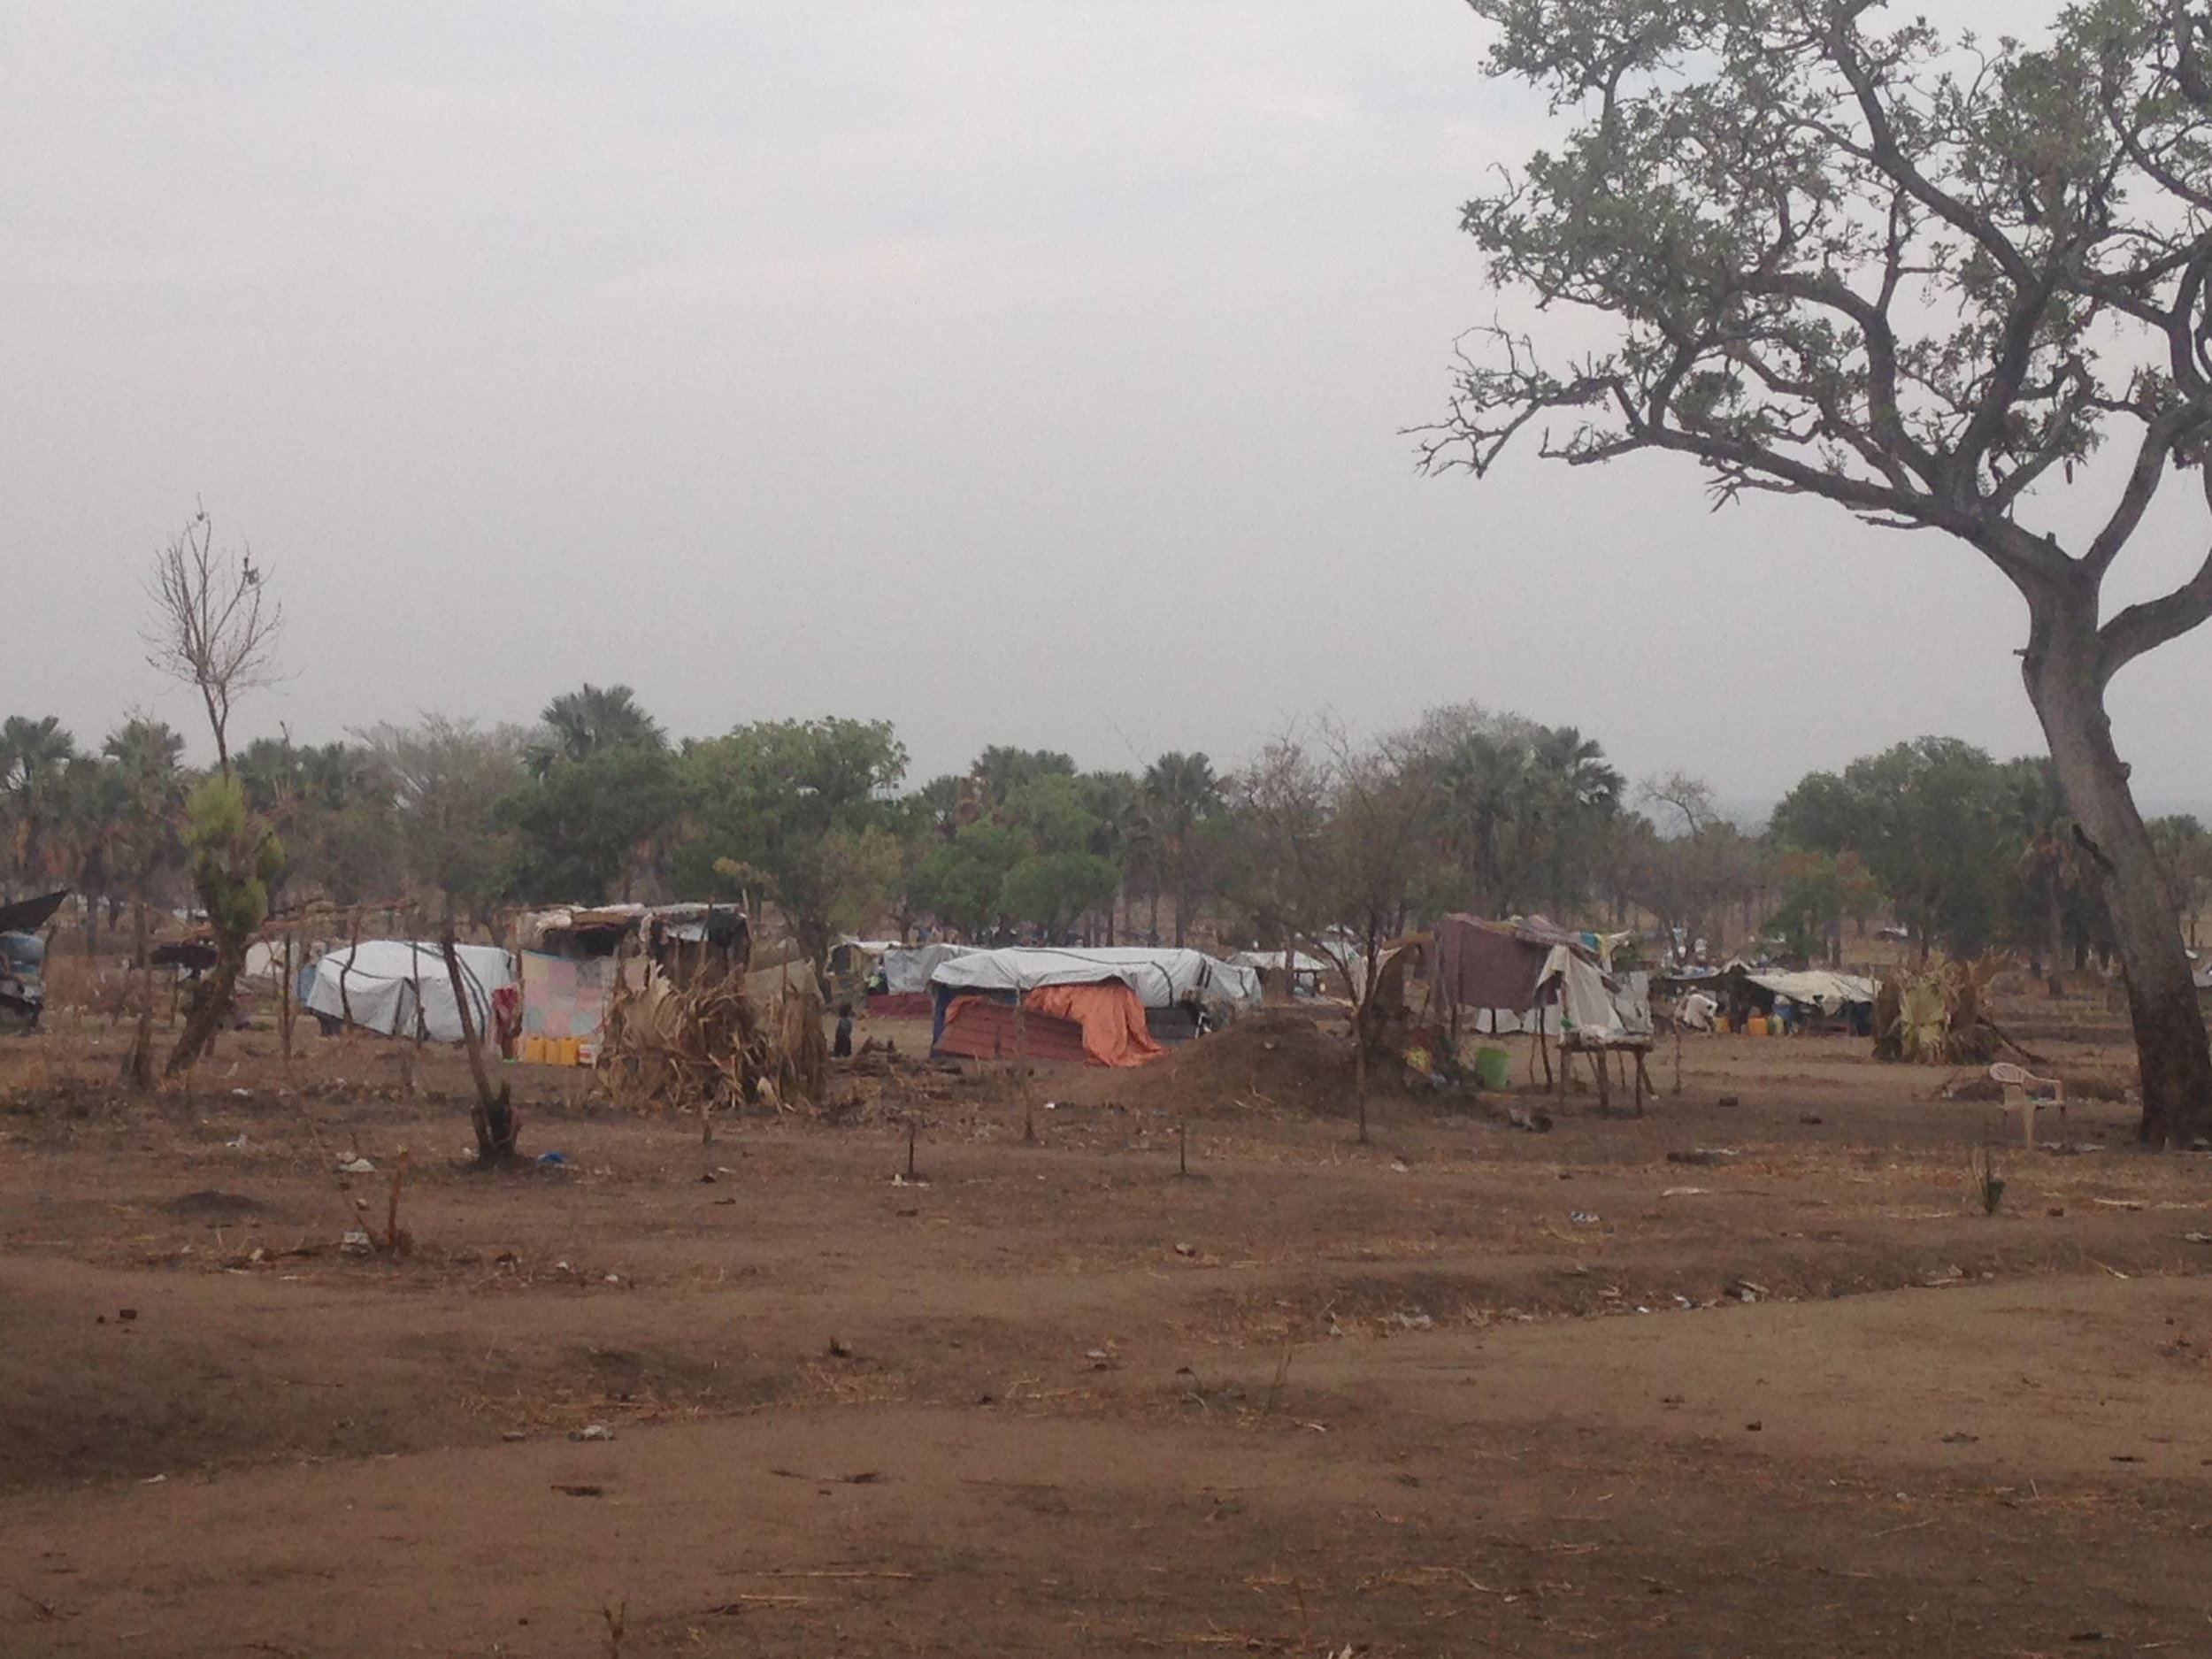 The Healing Kadi Foundation   providing medical services to the refugees   Mobile Clinic